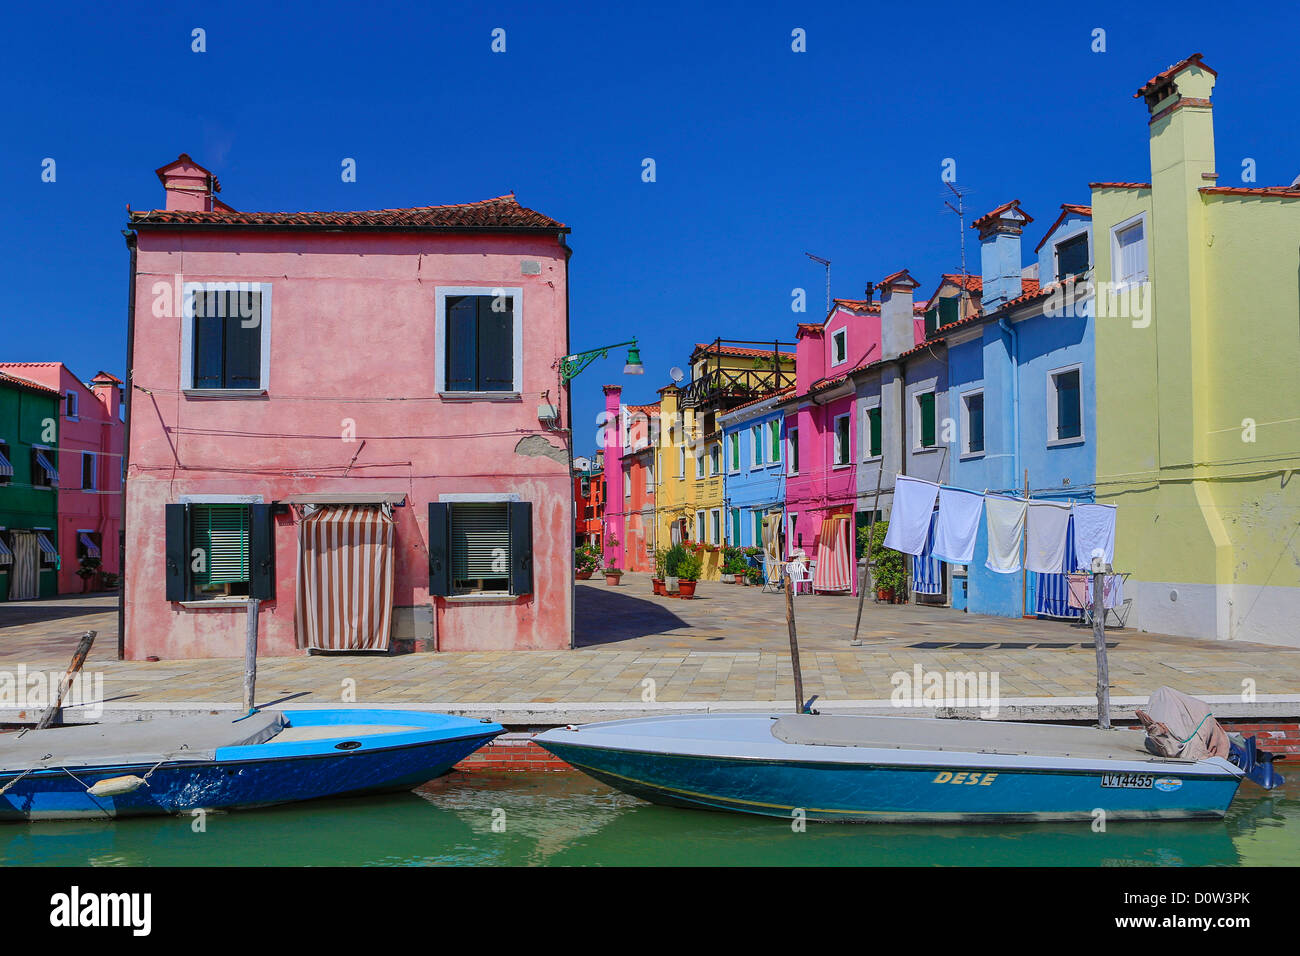 Italy, Europe, travel, Burano, architecture, boats, canal, colourful, colours, tourism, Venice - Stock Image